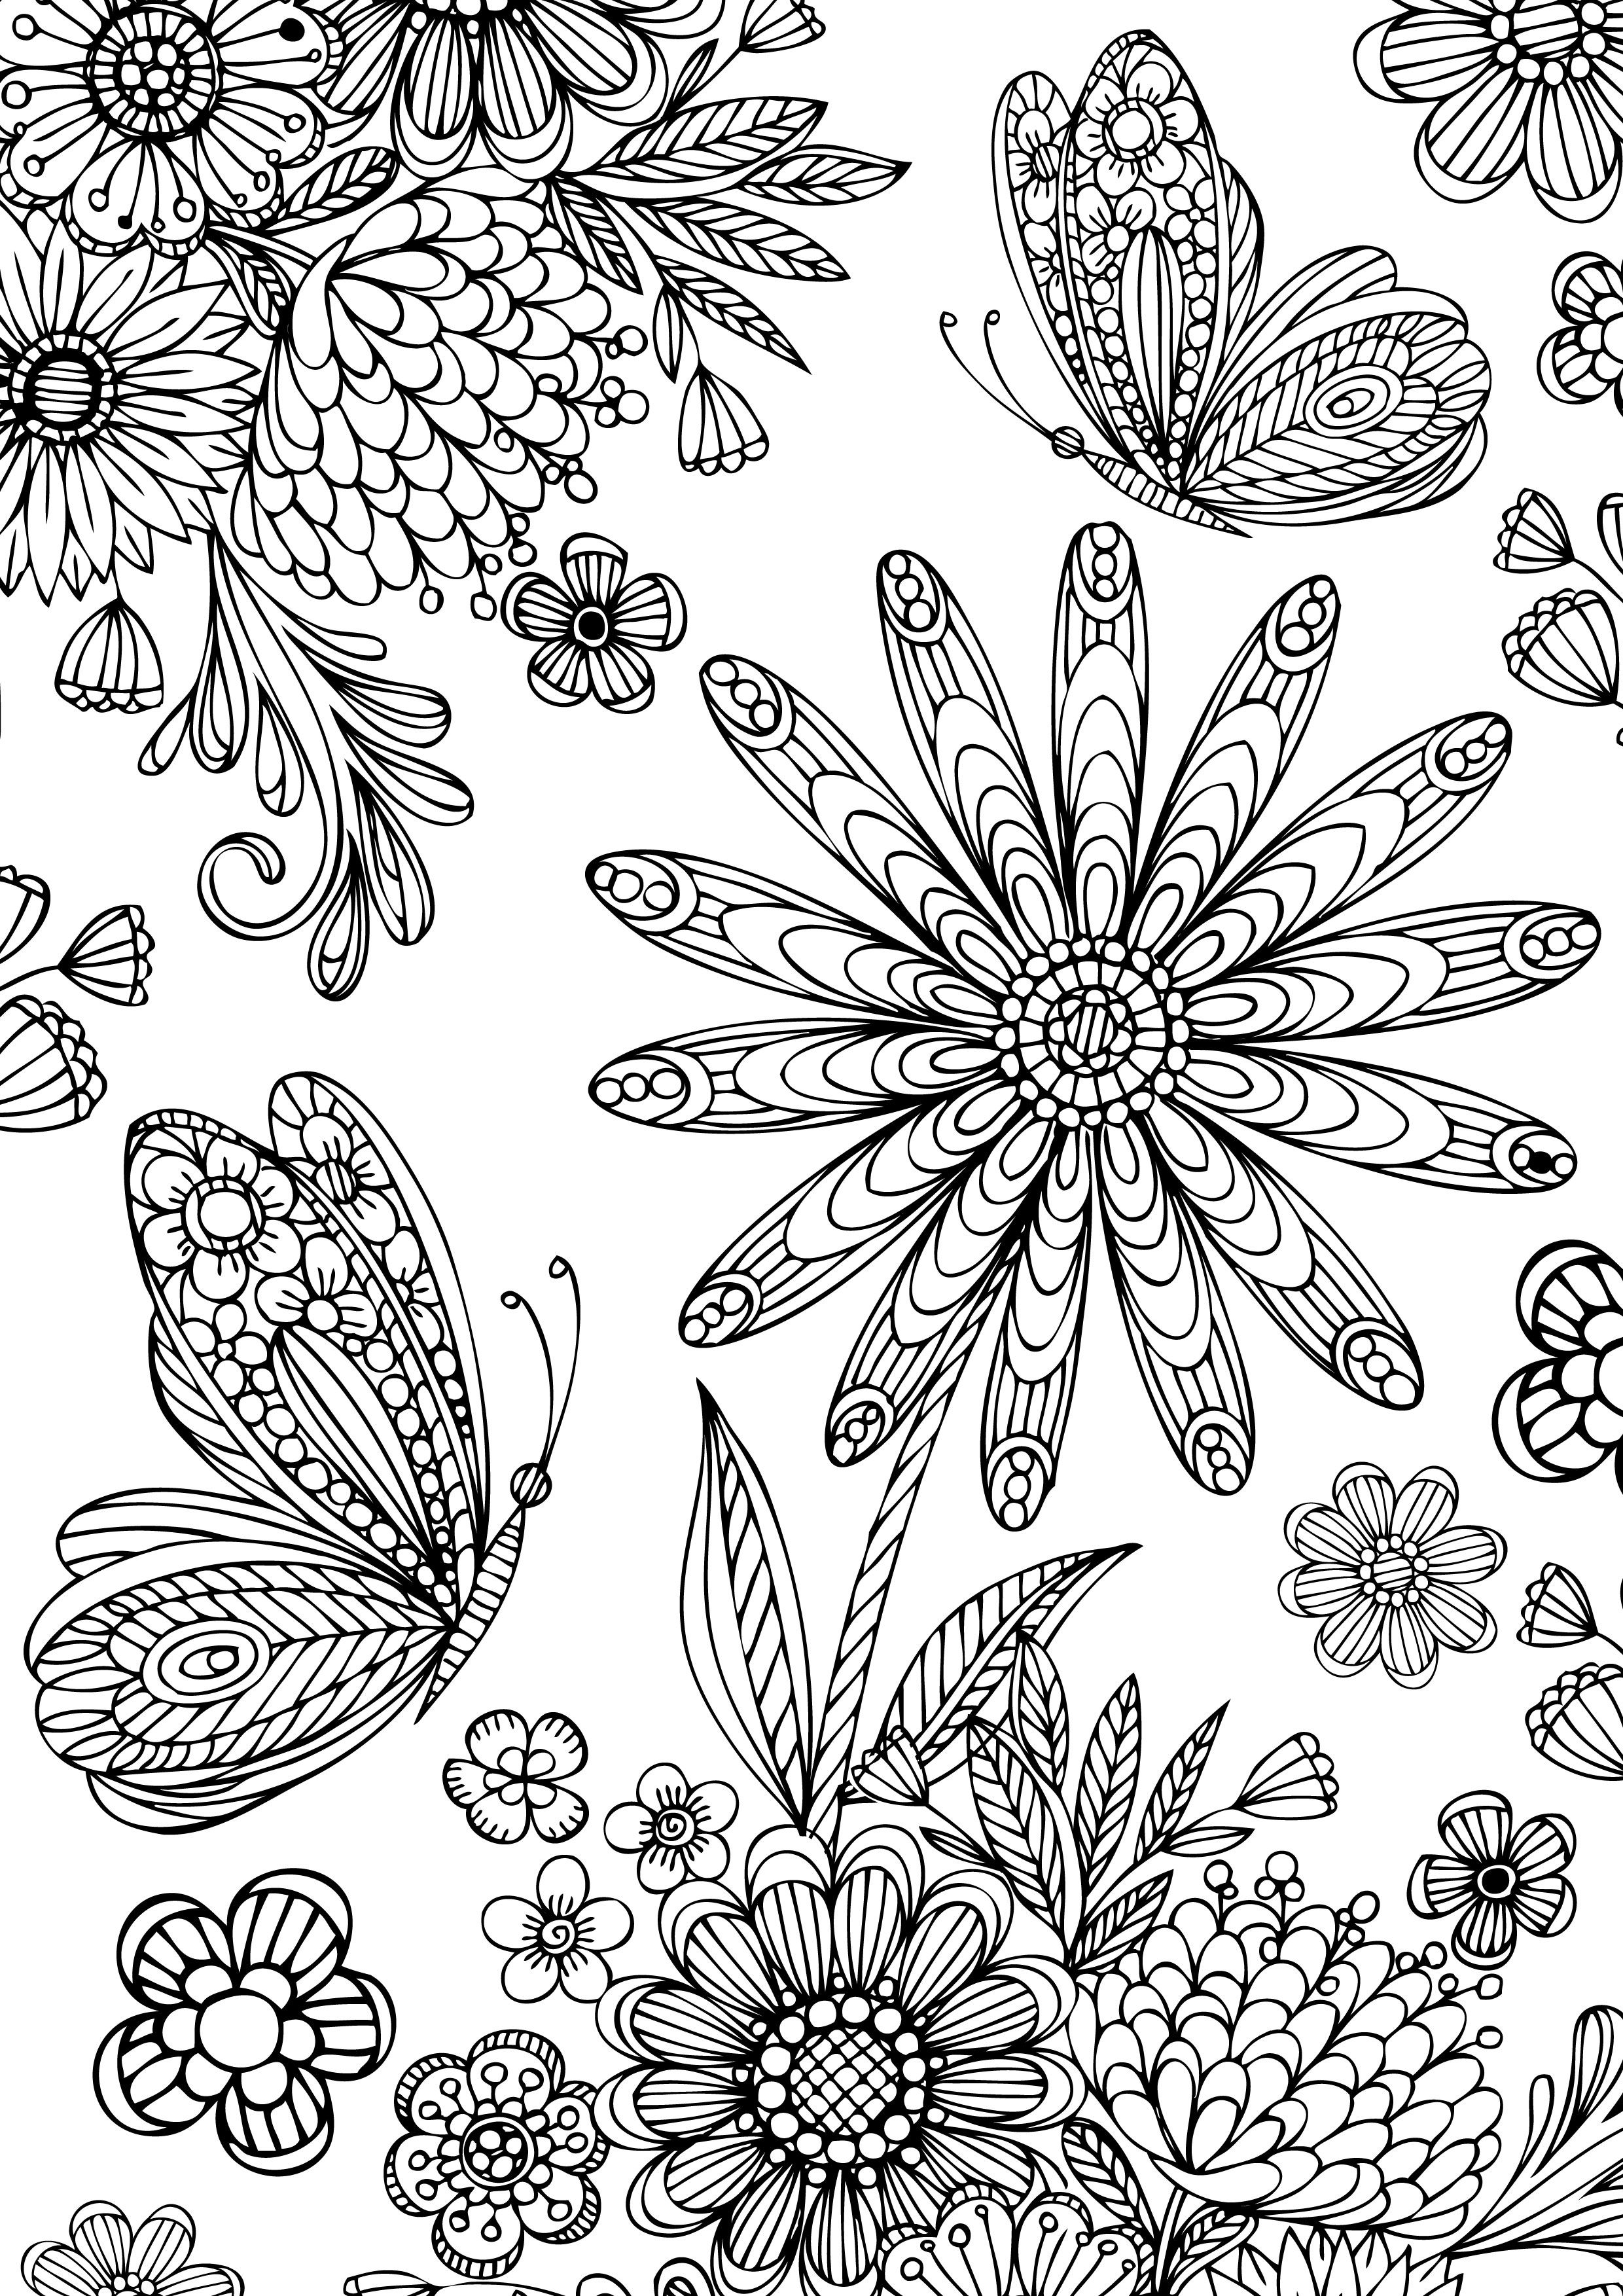 Free Coloring For Adults With Spectrum Noir Dibujar